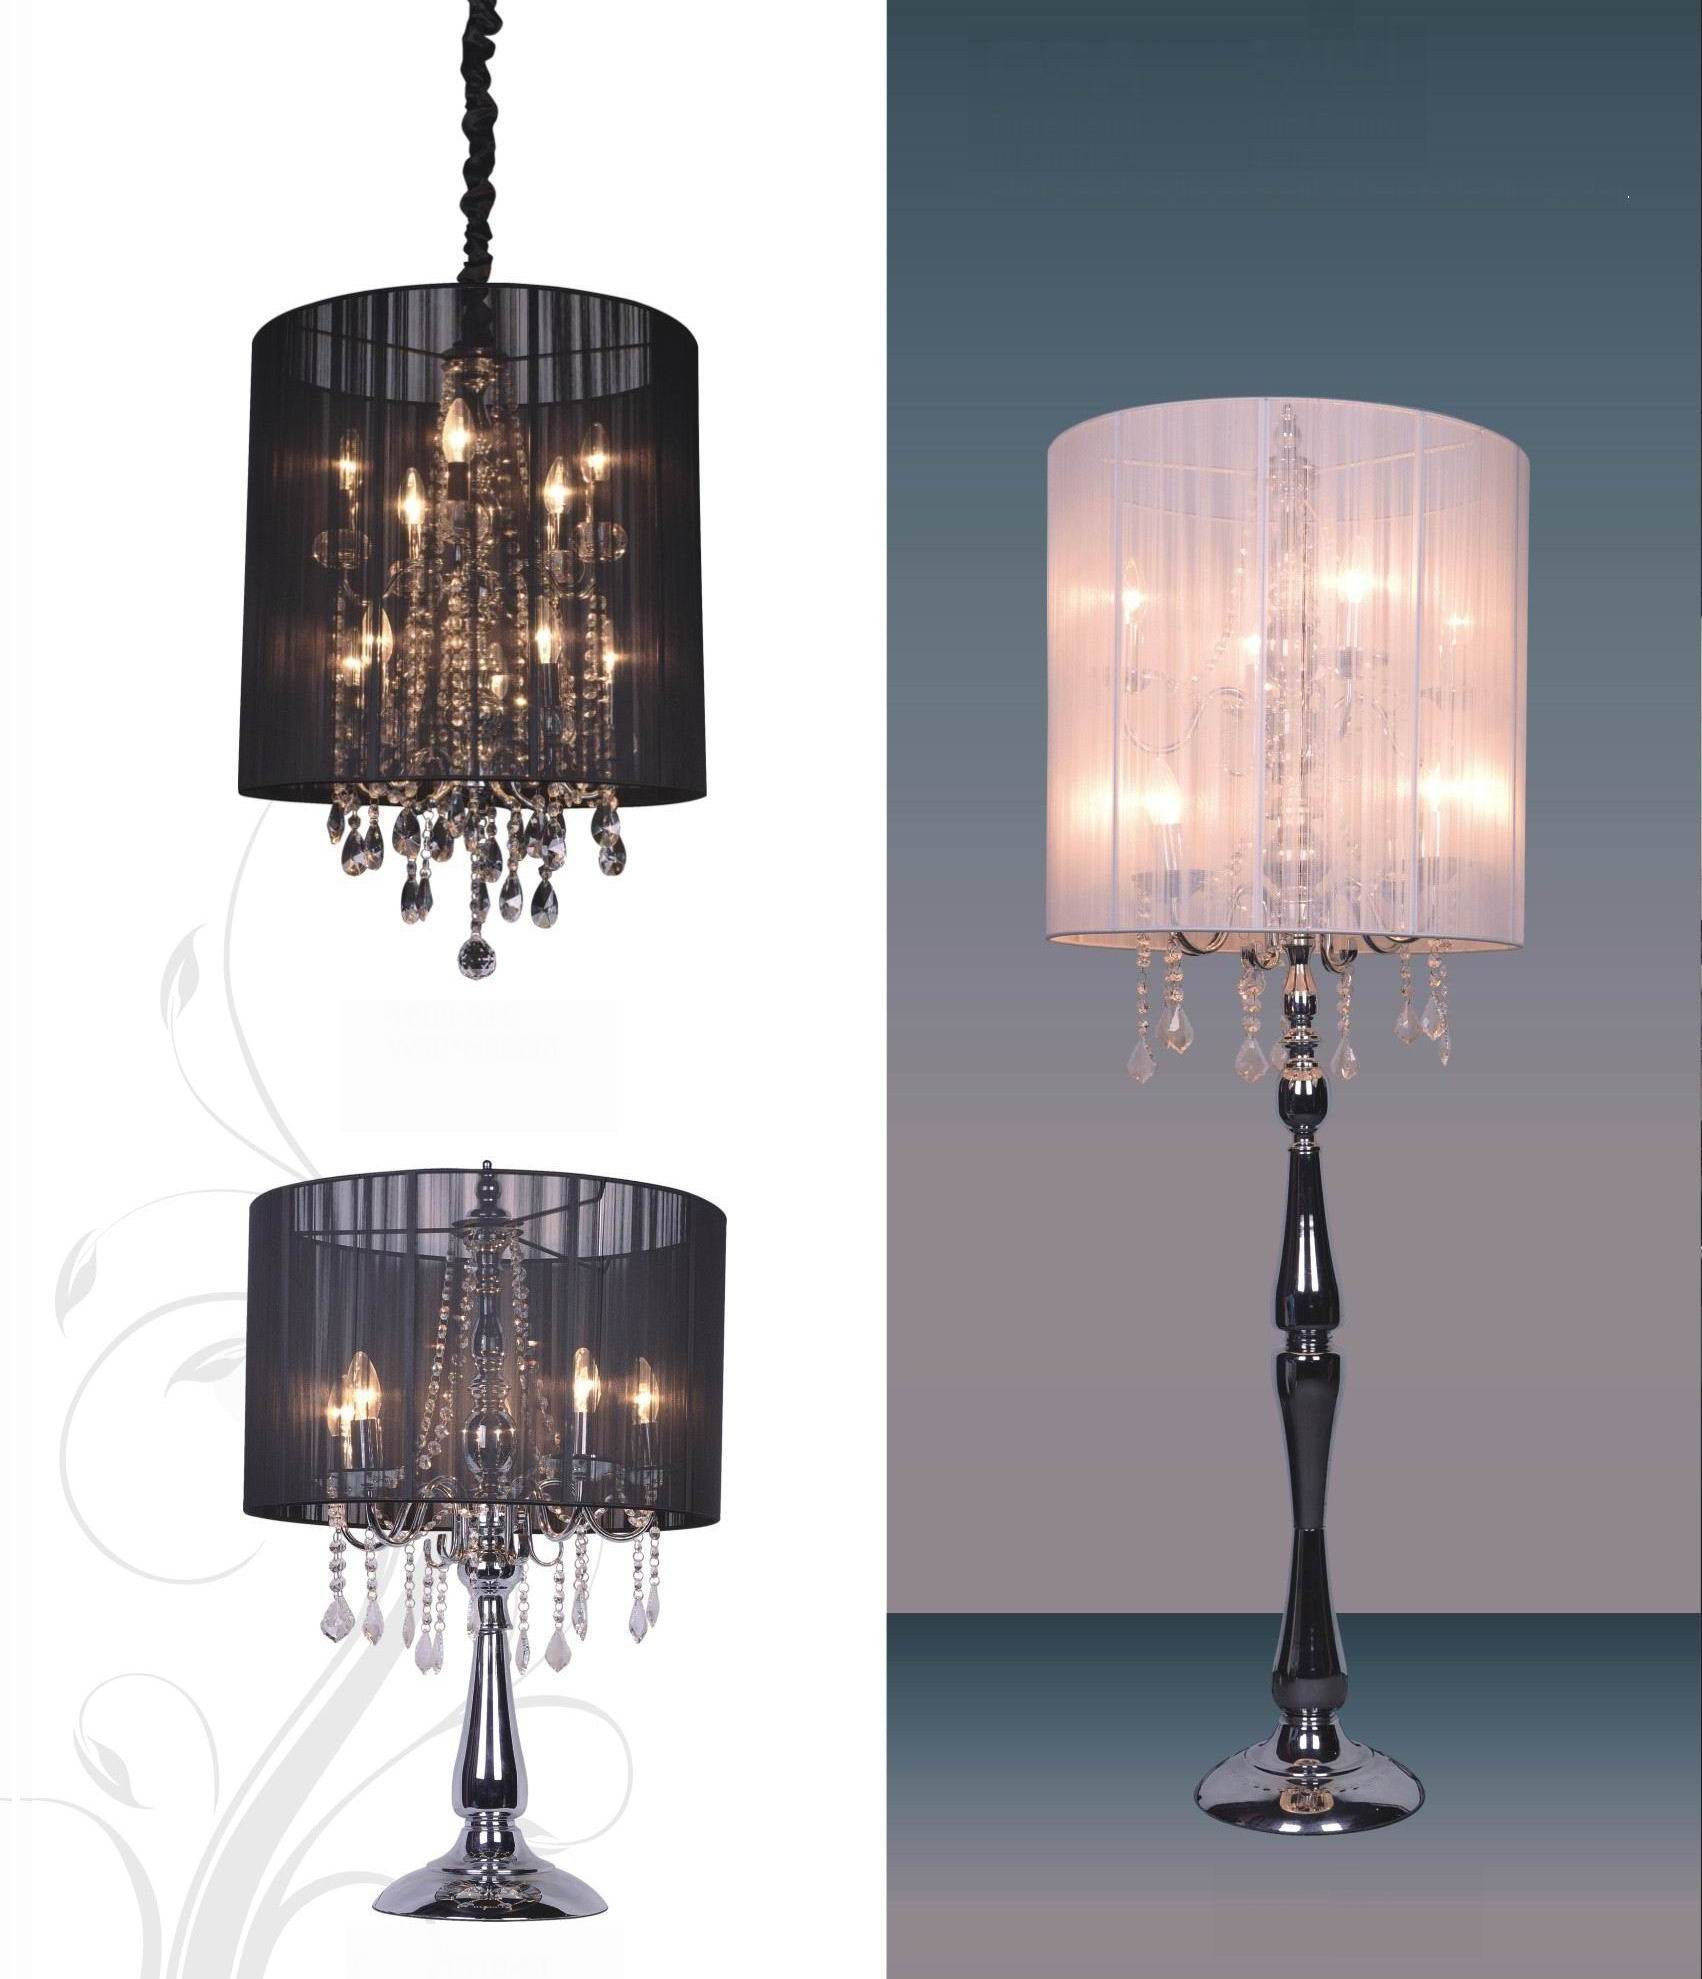 Crystal chandelier table lamps 15 ways to make any home shine crystal chandelier table lamps photo 8 geotapseo Image collections